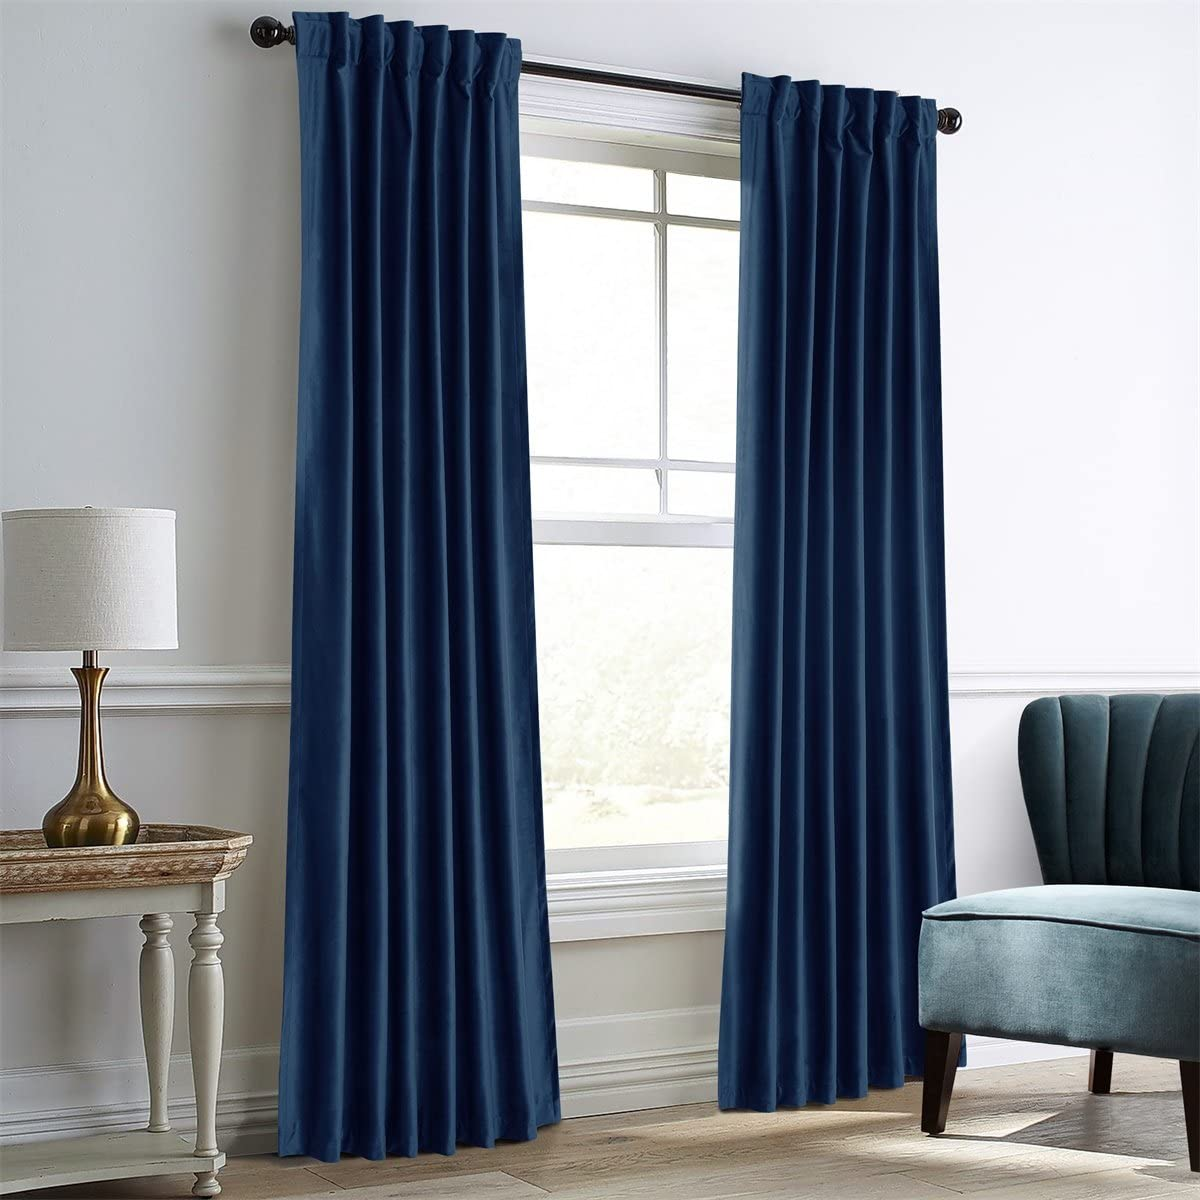 Dreaming Casa Royal Blue Velvet Room Darkening Curtains for Living Room Thermal Insulated Rod Pocket Back Tab Window Curtain